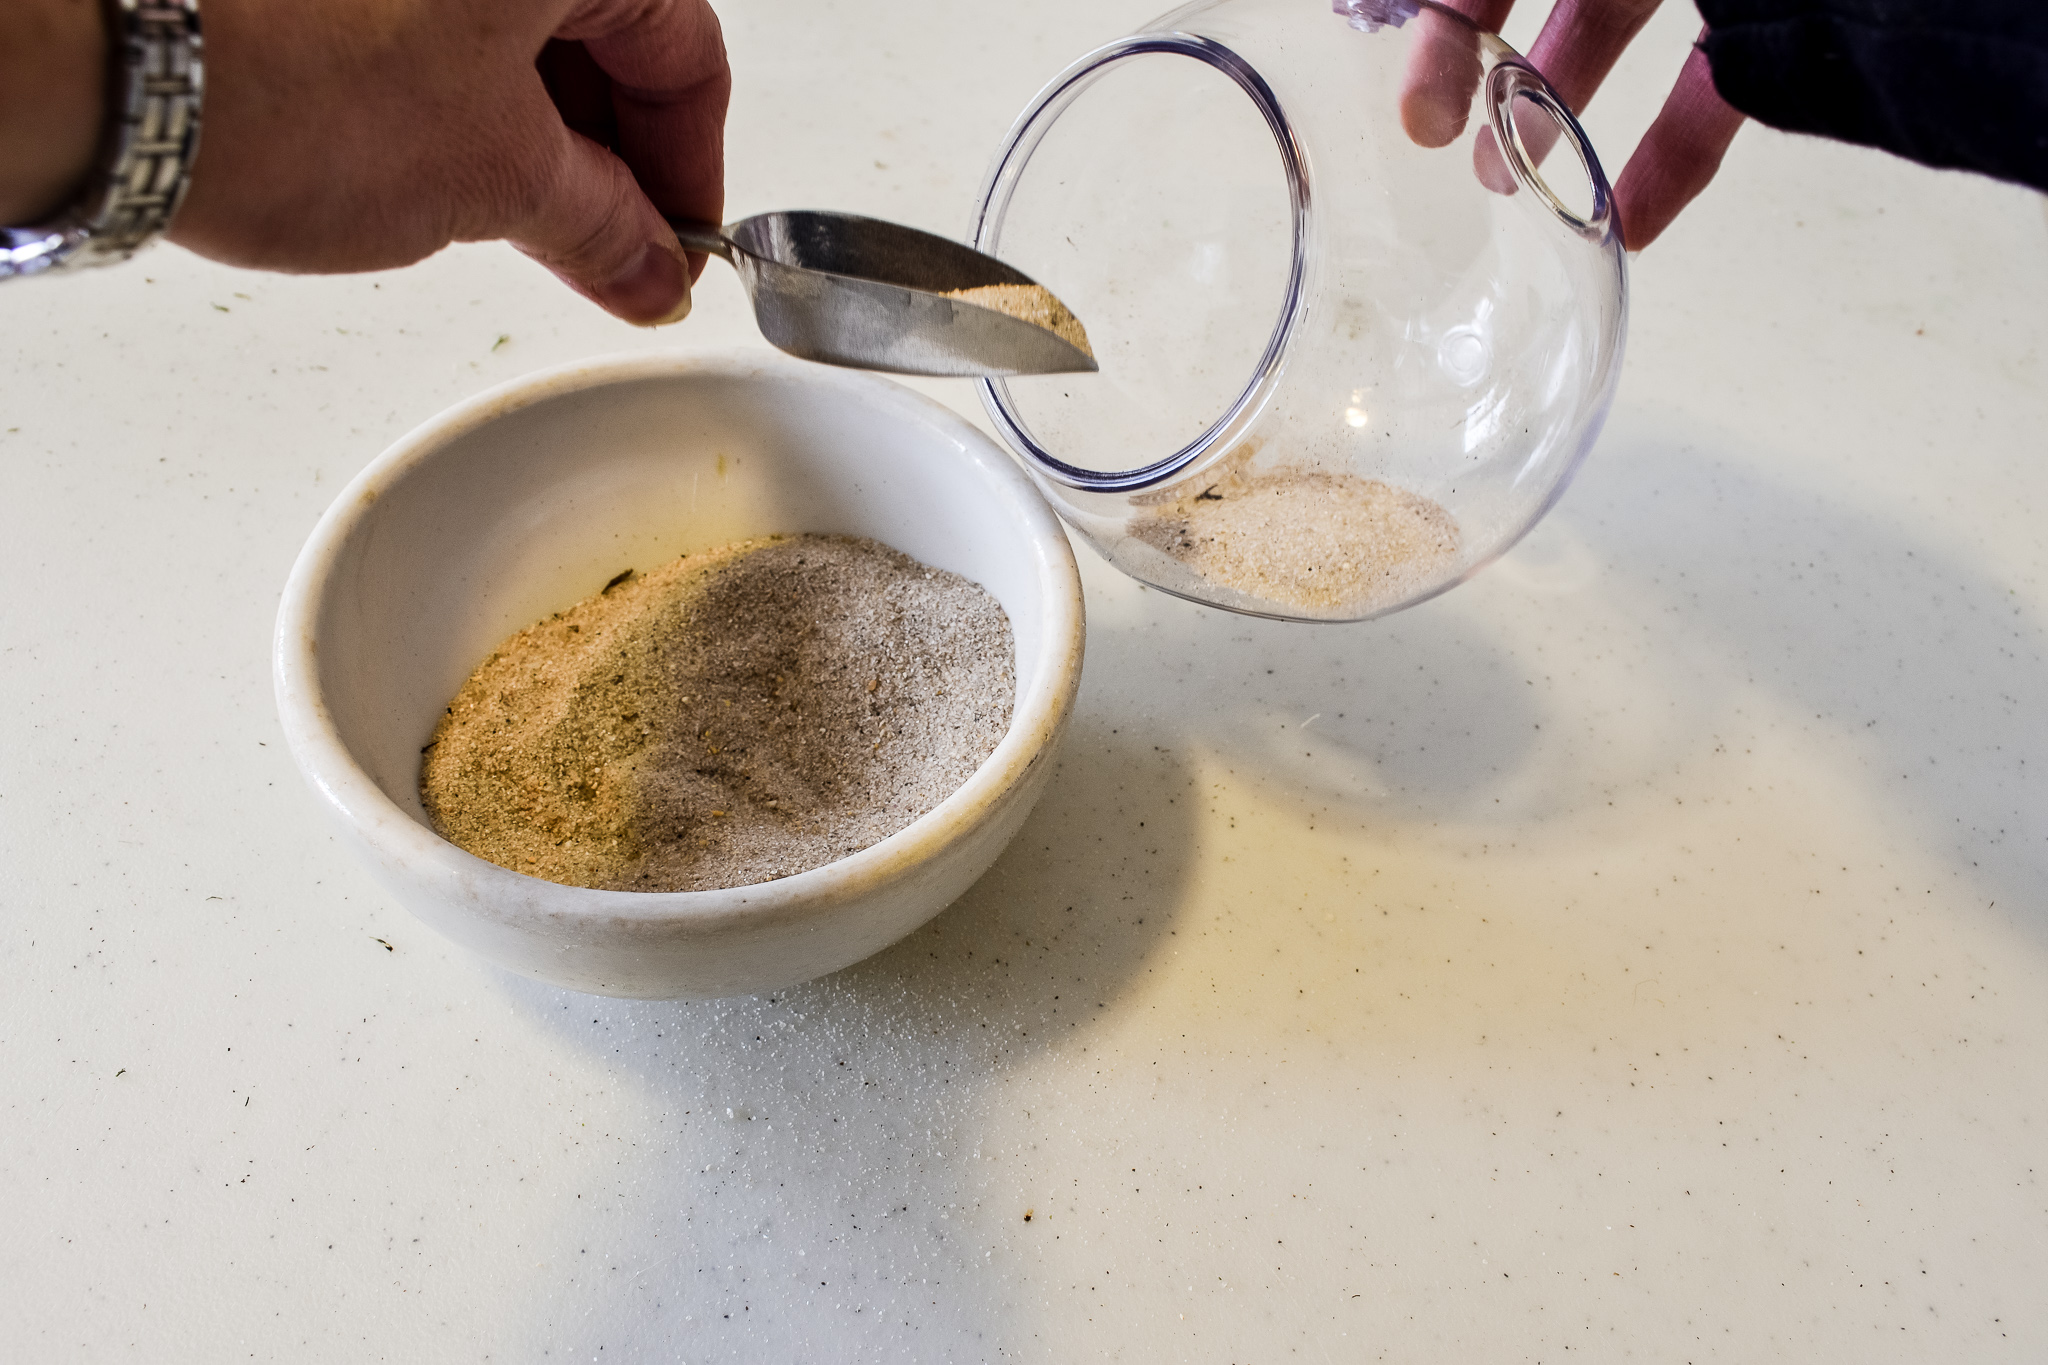 scooping sand into a terrarium to create a faux succulent decoration